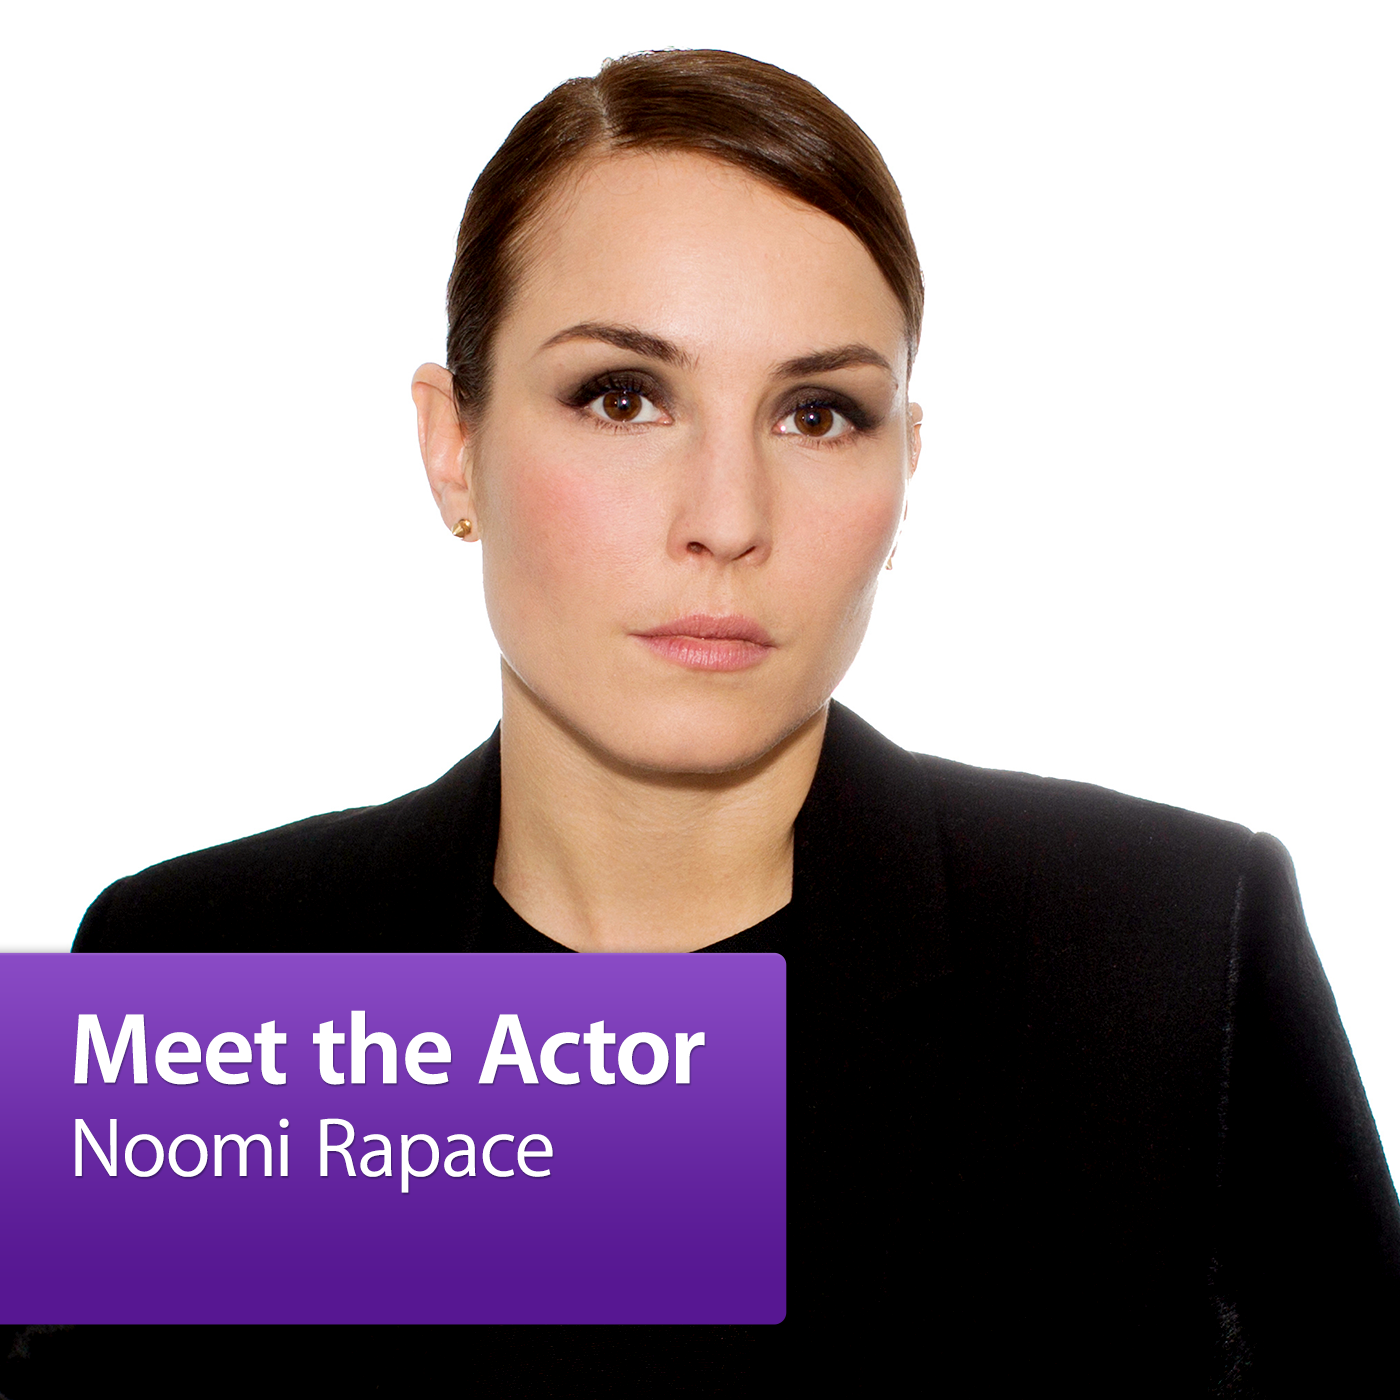 Noomi Rapace: Meet the Actor